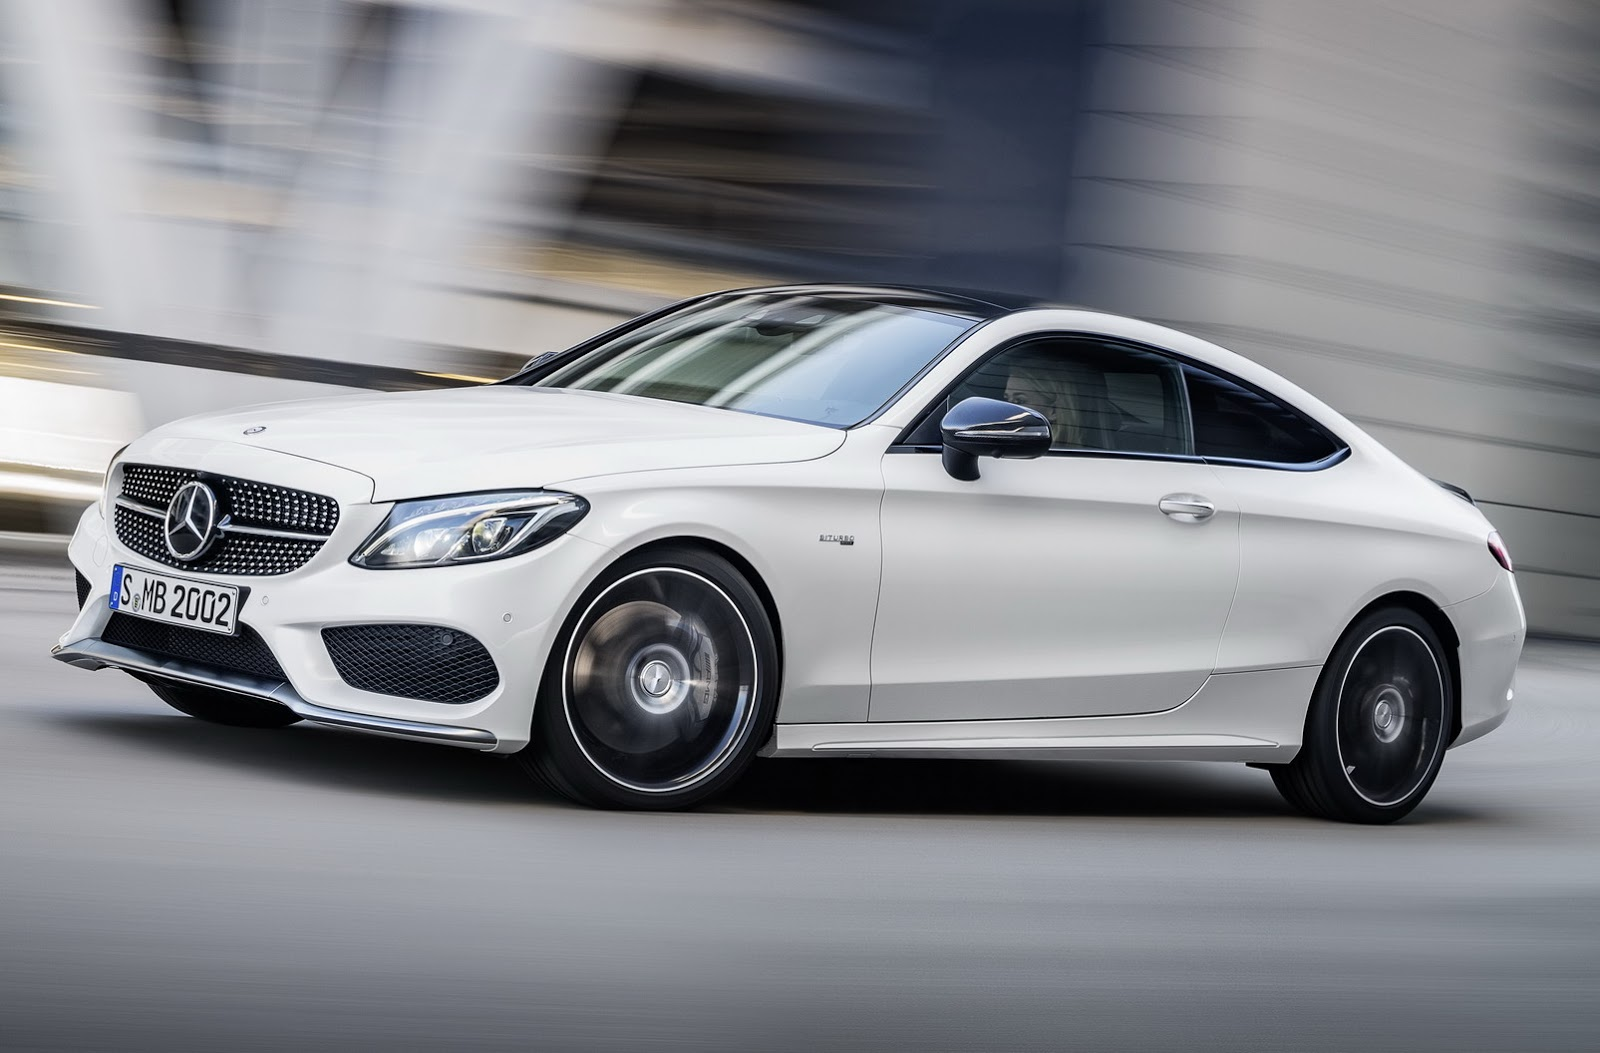 Mercedes Amg C43 Coupe Photo Gallery Autocar India